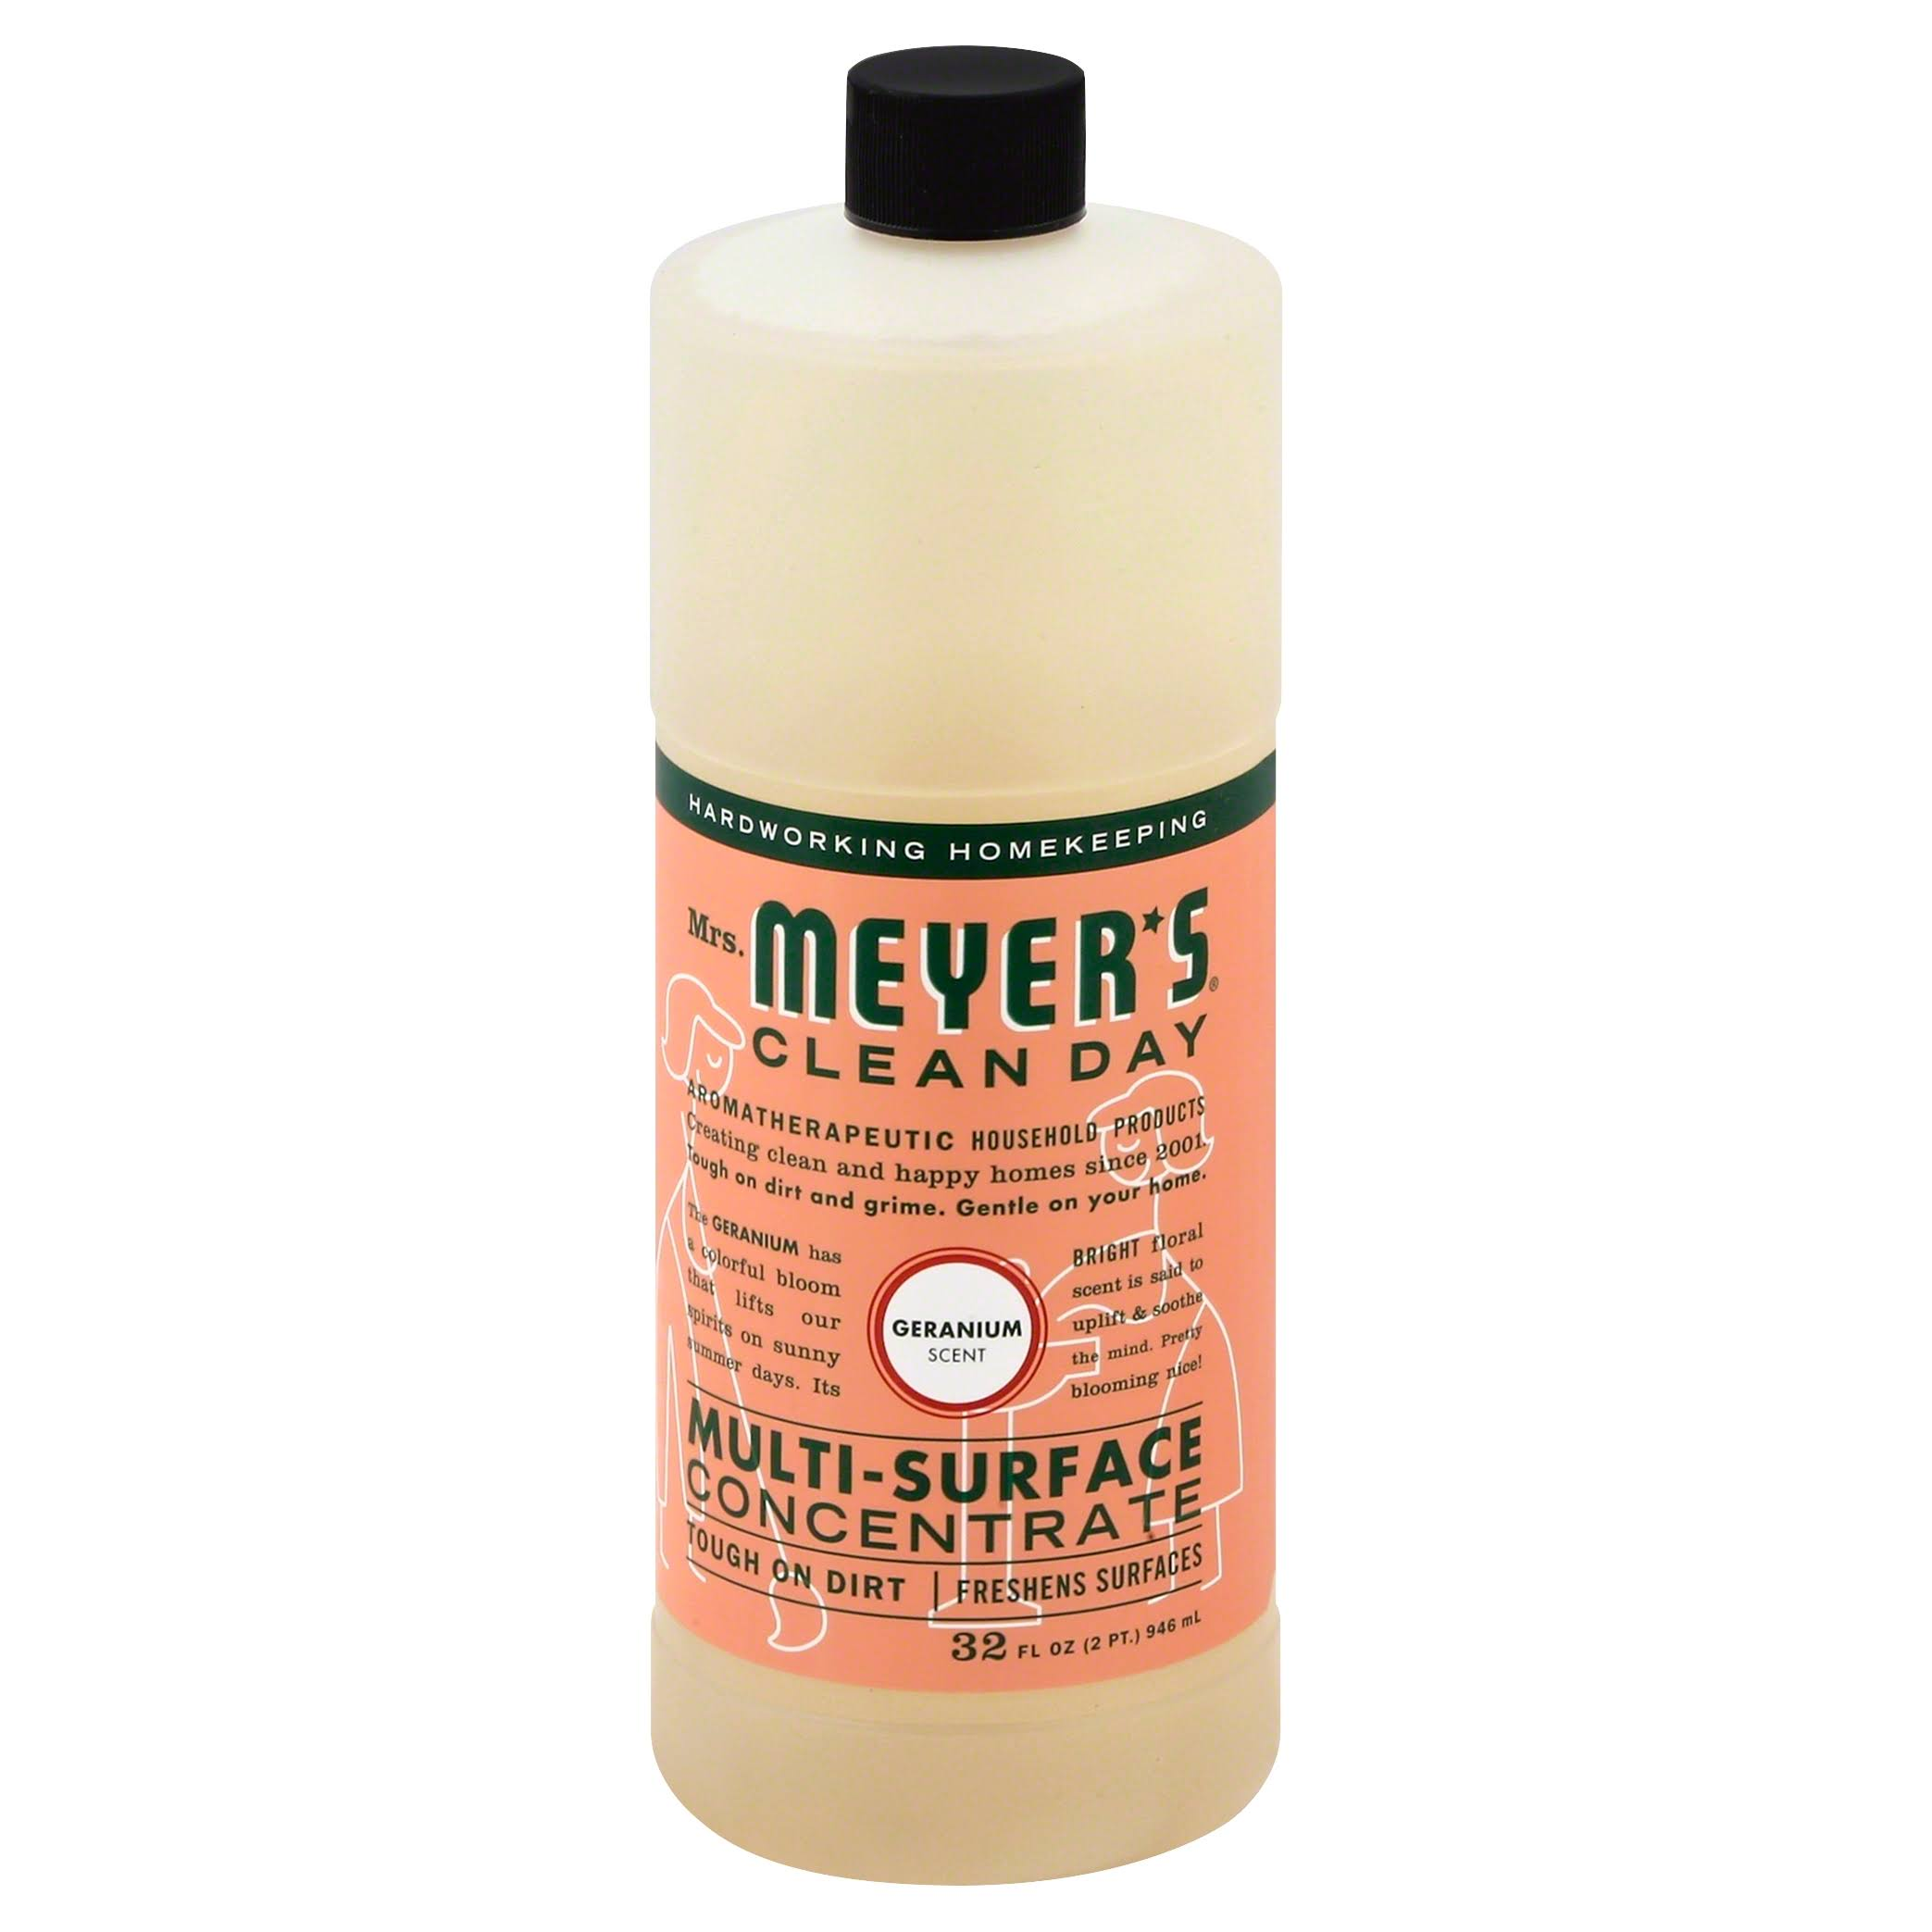 Mrs. Meyer's Multi-Surface Everyday Cleaner - 946ml